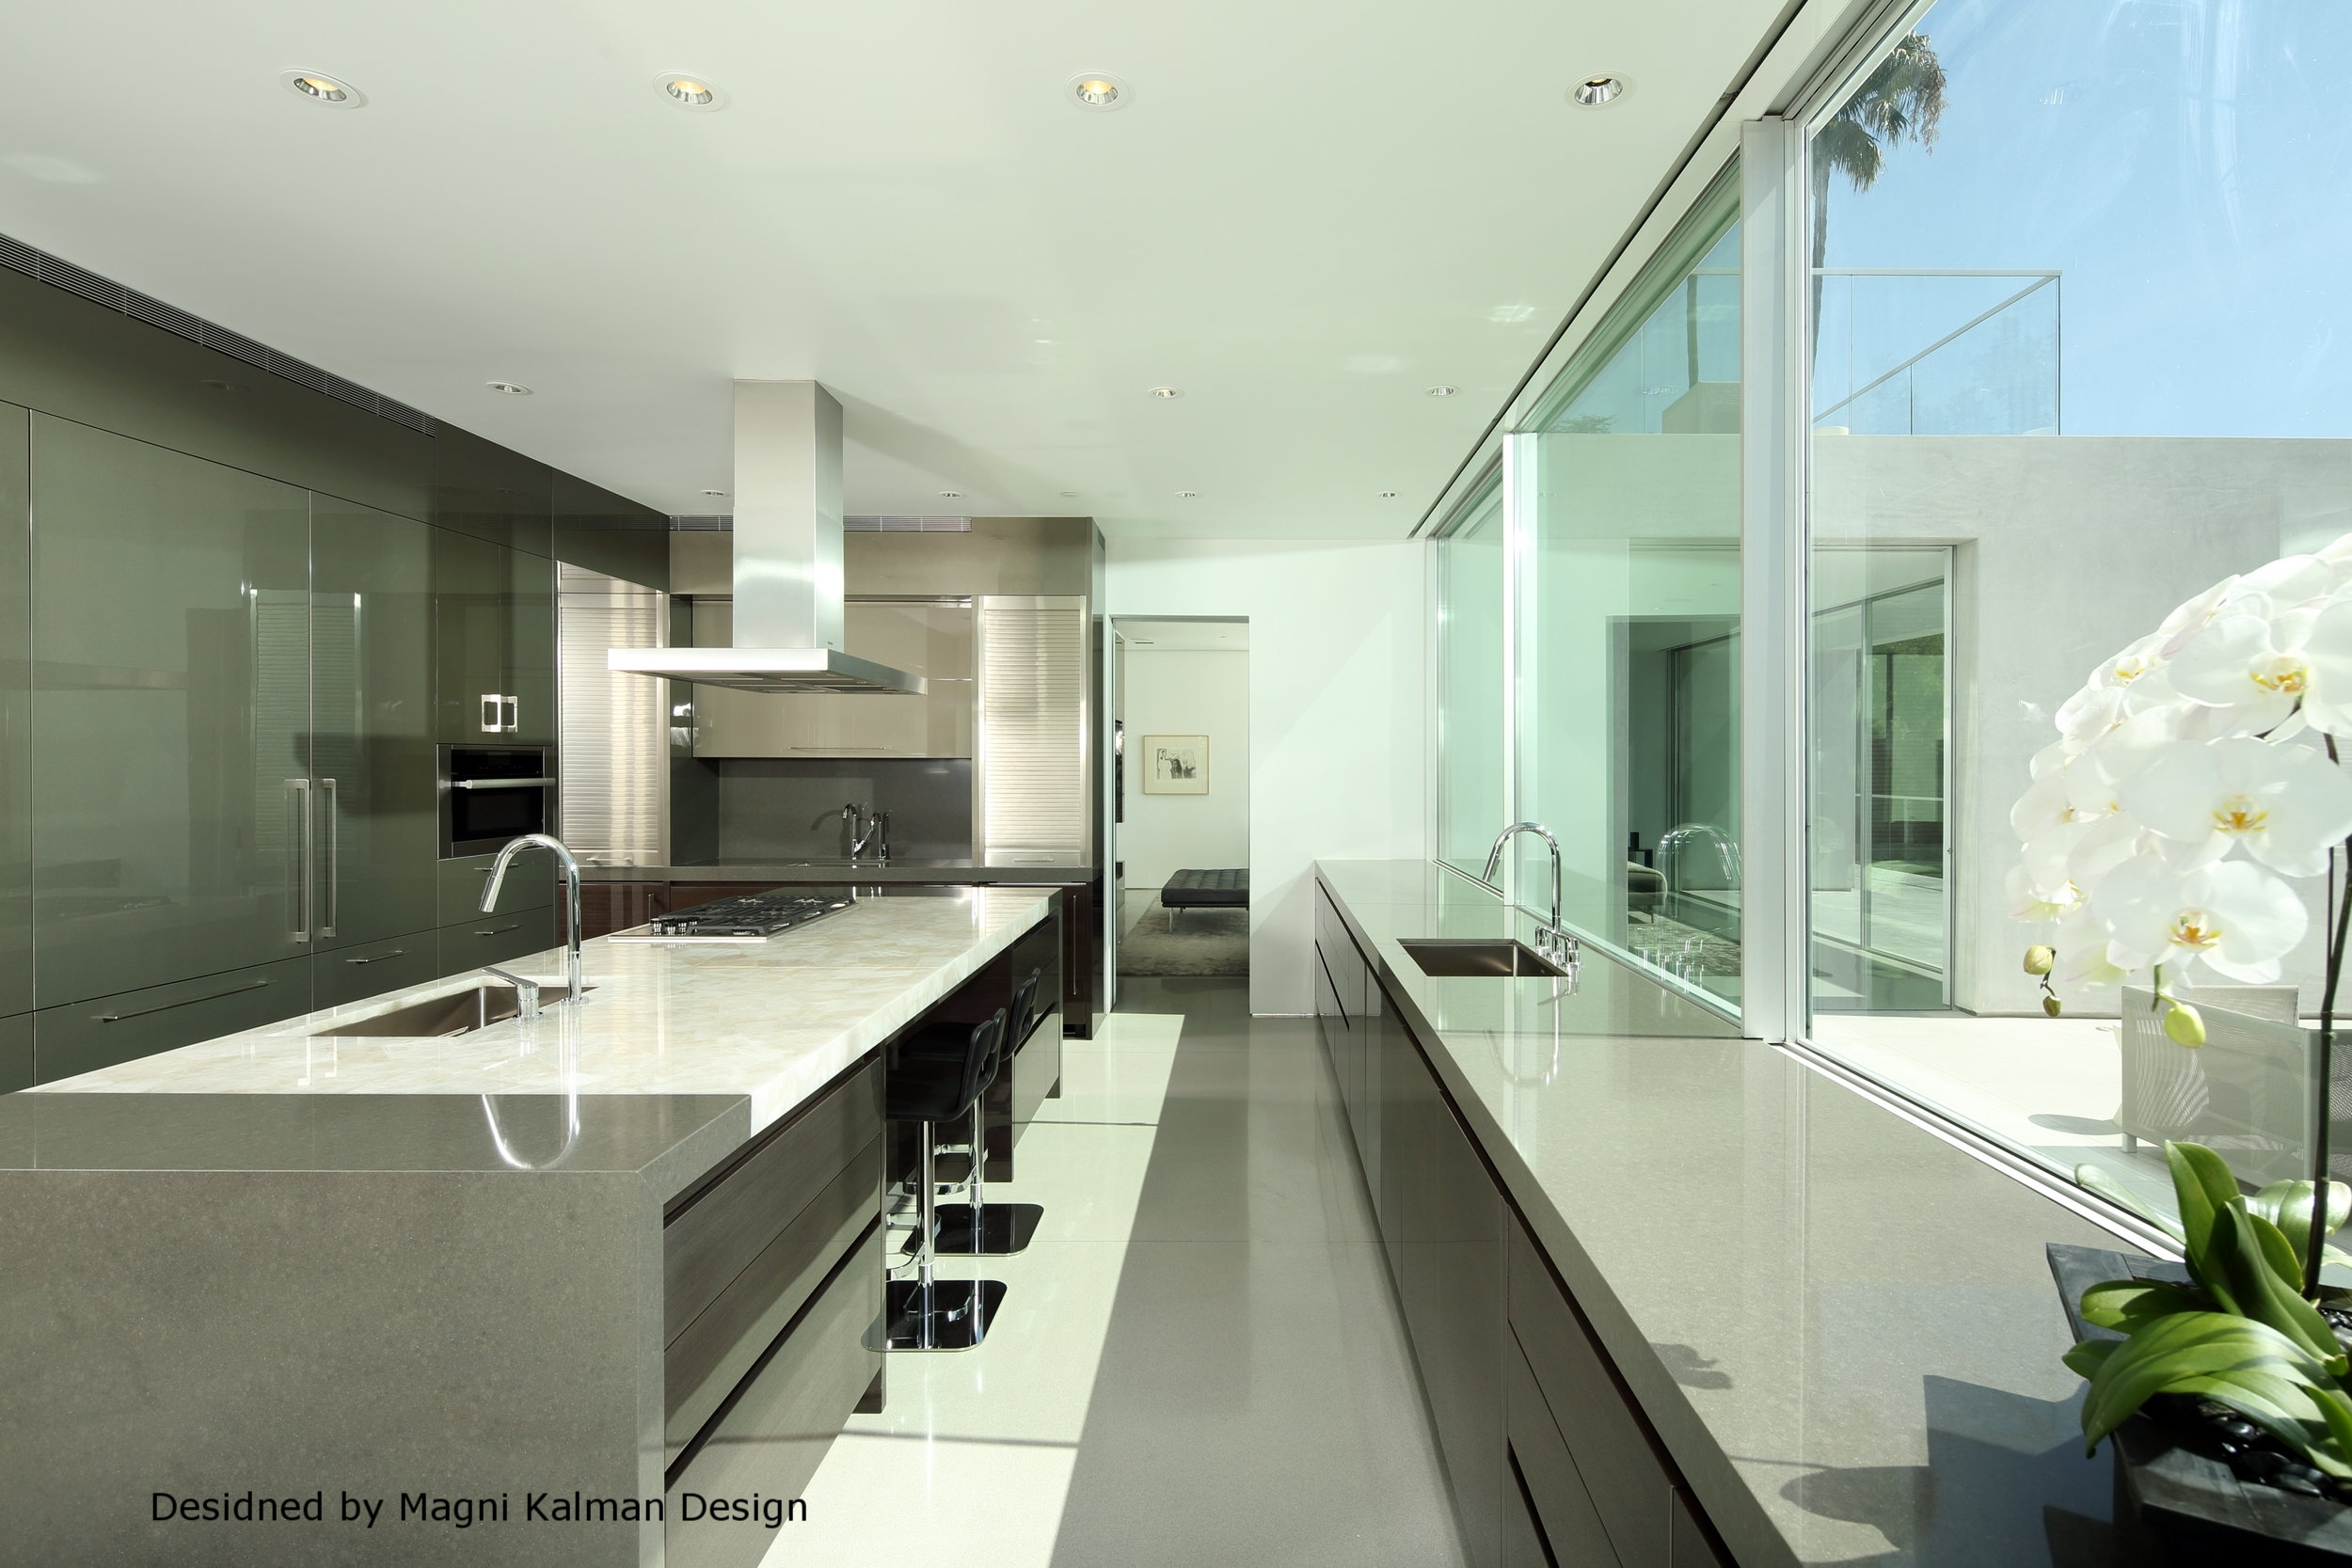 Angelo_4986_Kitchen.JPG